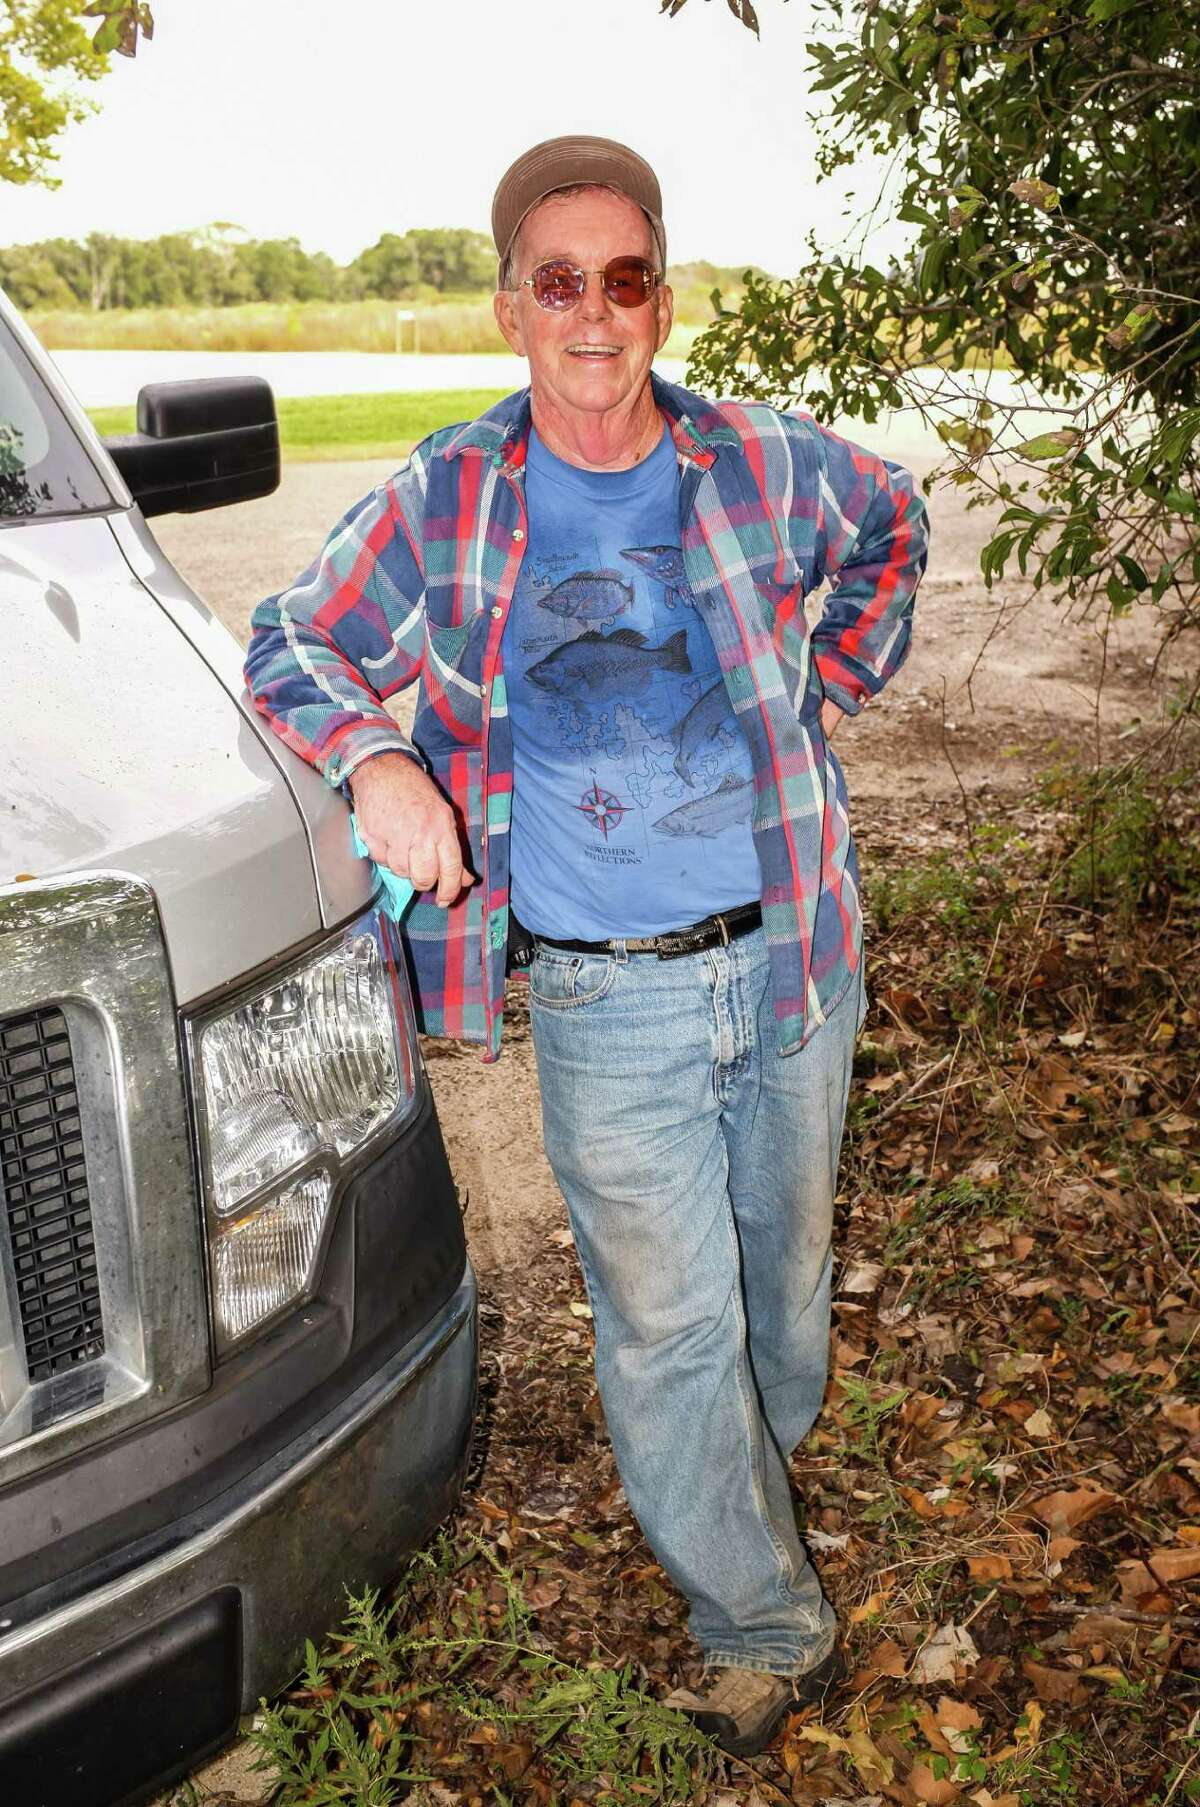 Tom Solomon is a volunteer with the Galveston Bay Area Chapter - Texas Master Naturalist.